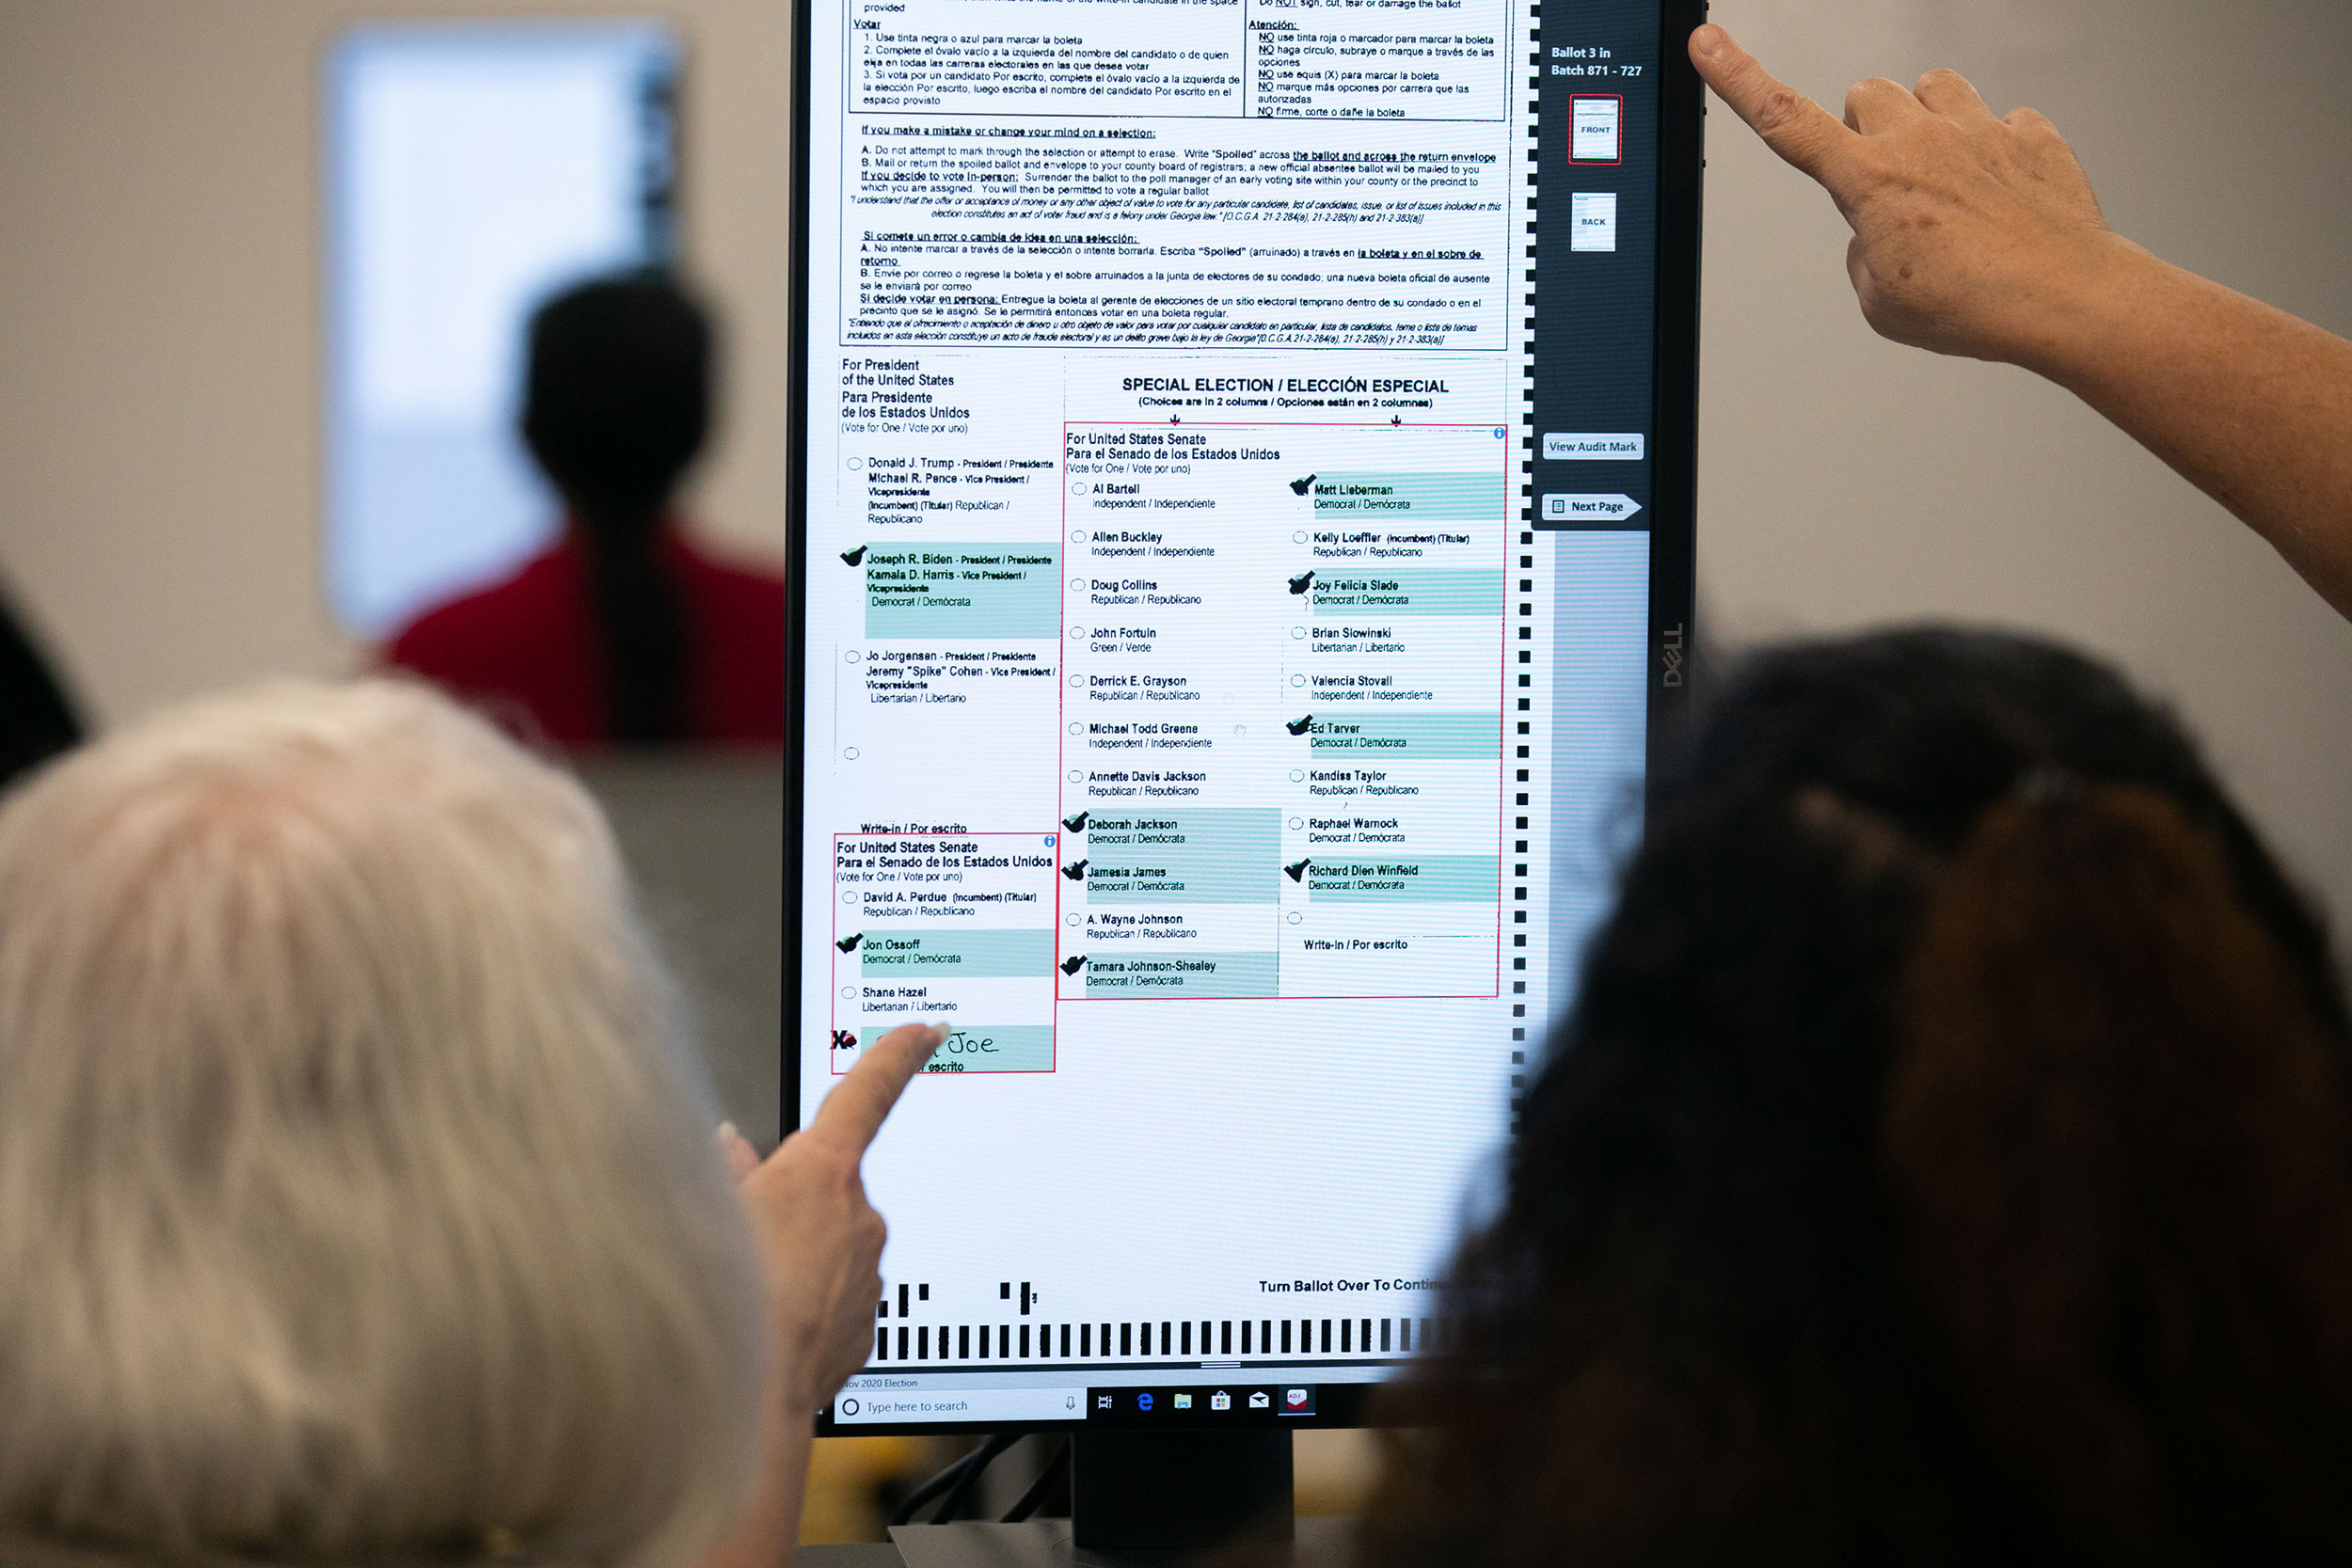 Members of the Gwinnett County adjudication review panel look over ballots on November 8 in Lawrenceville, Georgia.